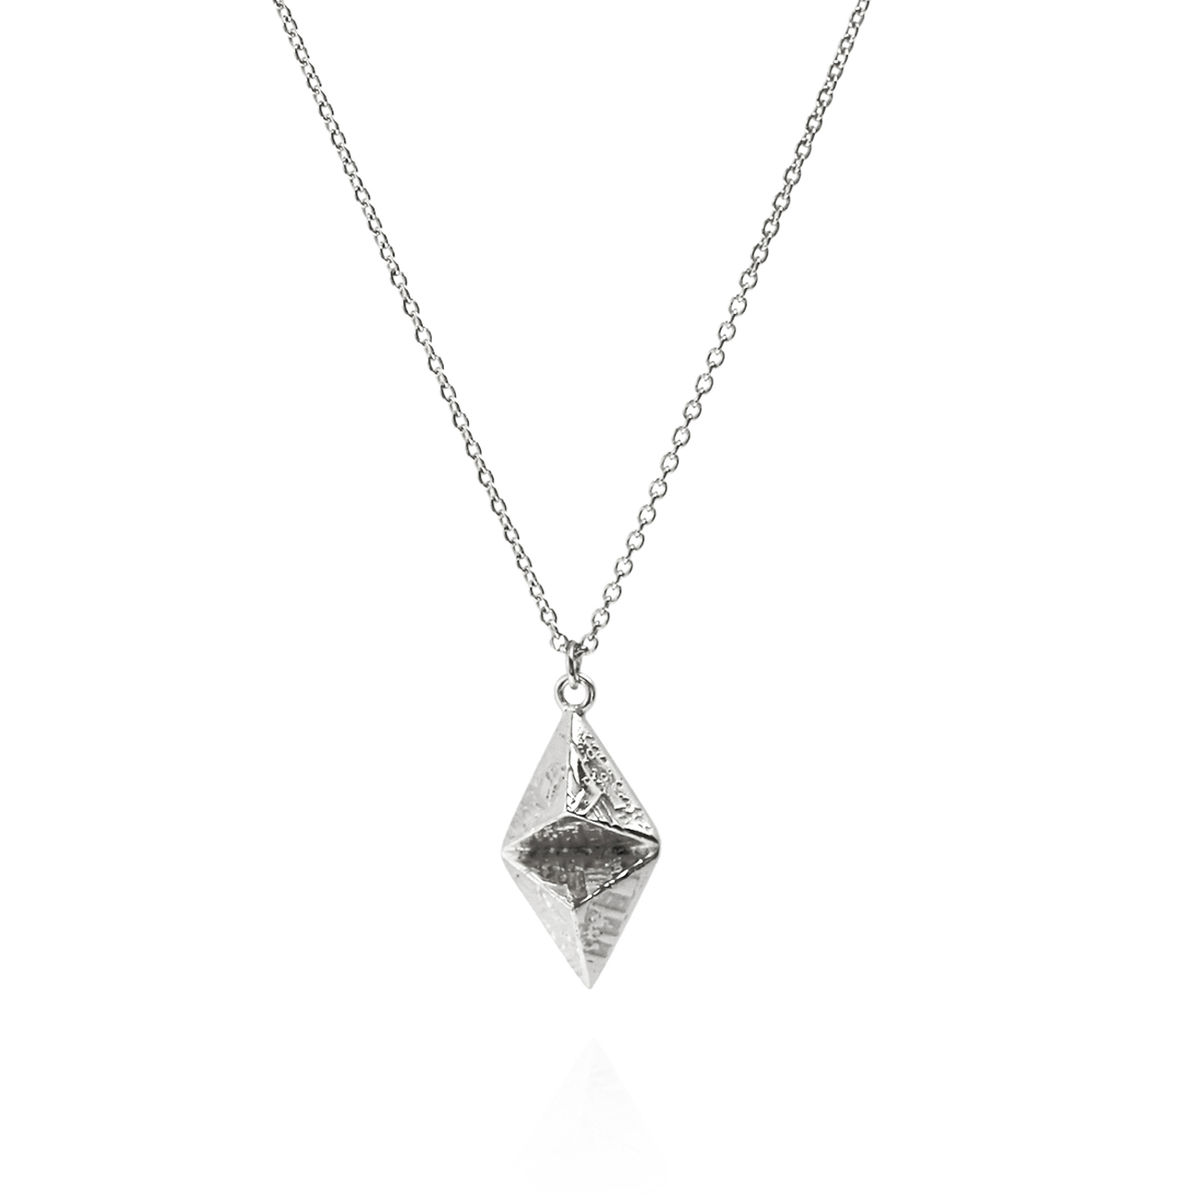 SOUVENIR double pyramid pendant SIL - sterling silver - product image